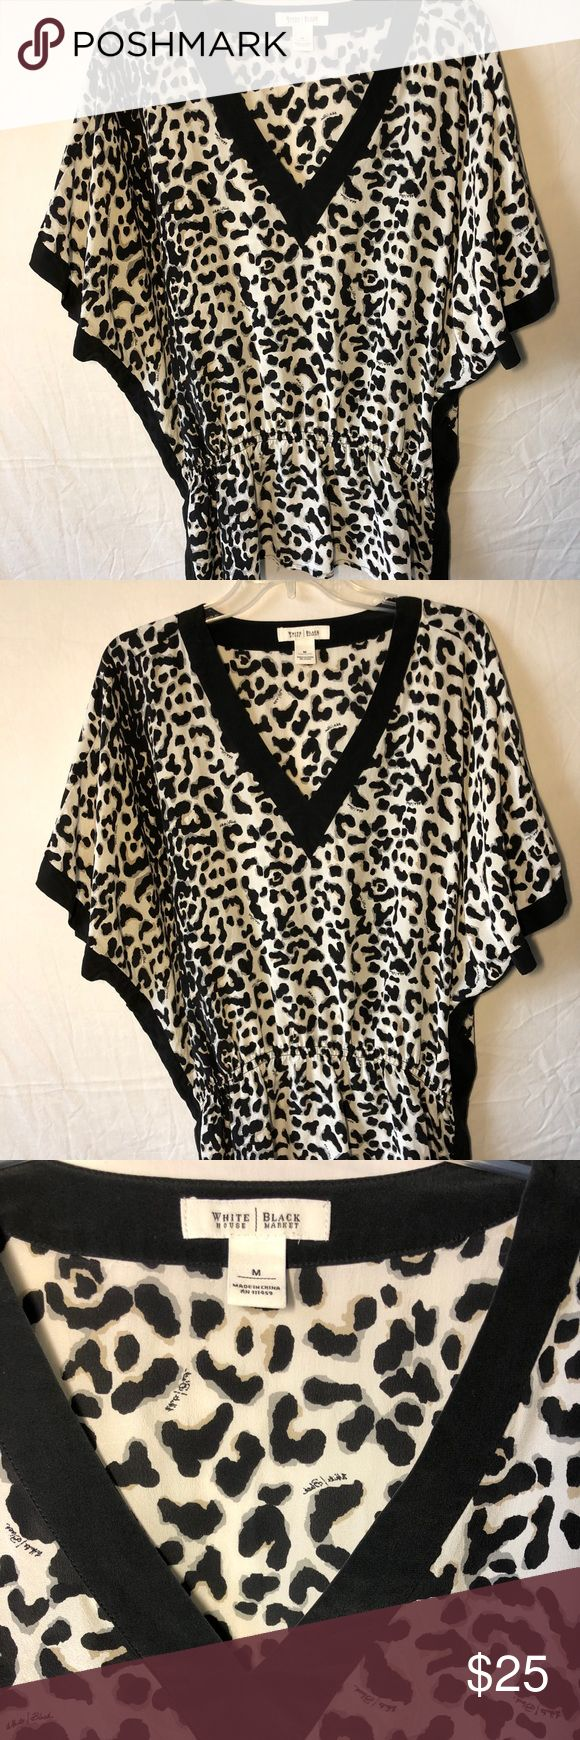 White House Black Market Silk Animal Print Top Gently used, beautiful 100% silk WHBM blouse. This loose fitting top features animal print, batwing sleeves and a cinched waistline.   Measurements may very slightly: 16 inch from shoulder to shoulder 15 inch sleeve 53 inch bust 34 inch waist White House Black Market Tops Blouses